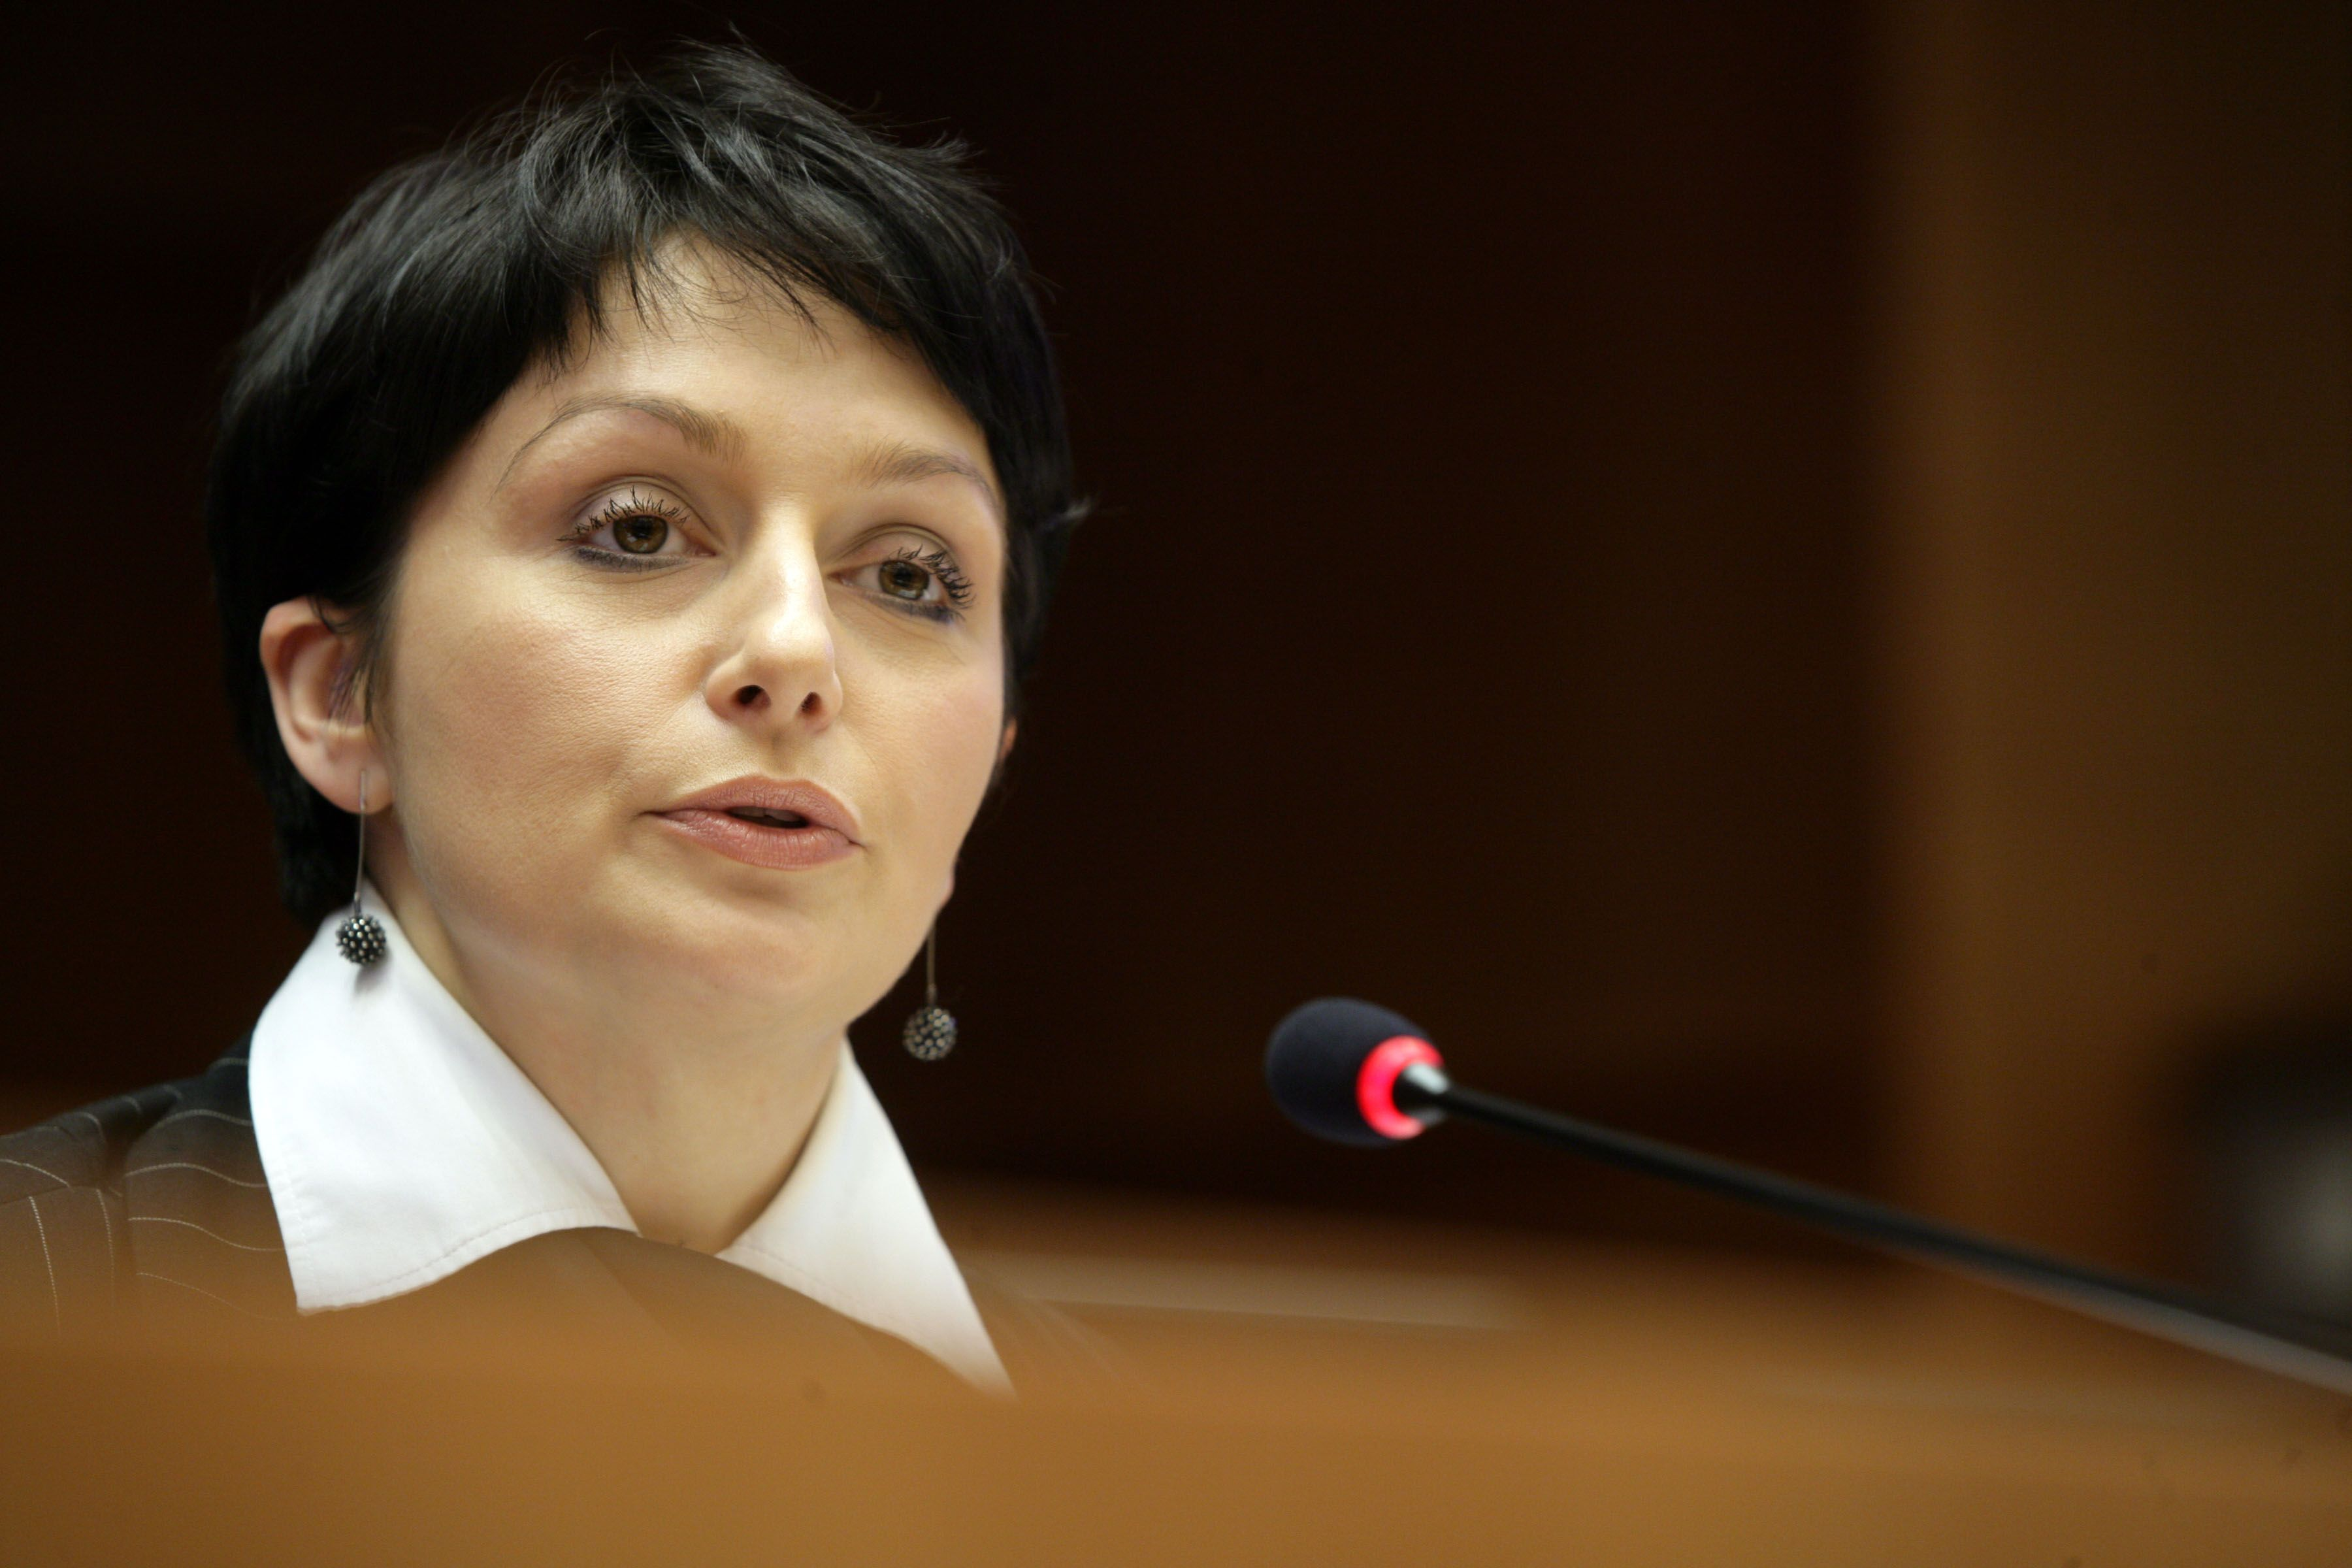 Anna Potocka, Vice President of the Business Centre Club, Poland, speaking to the EESC plenary assembly